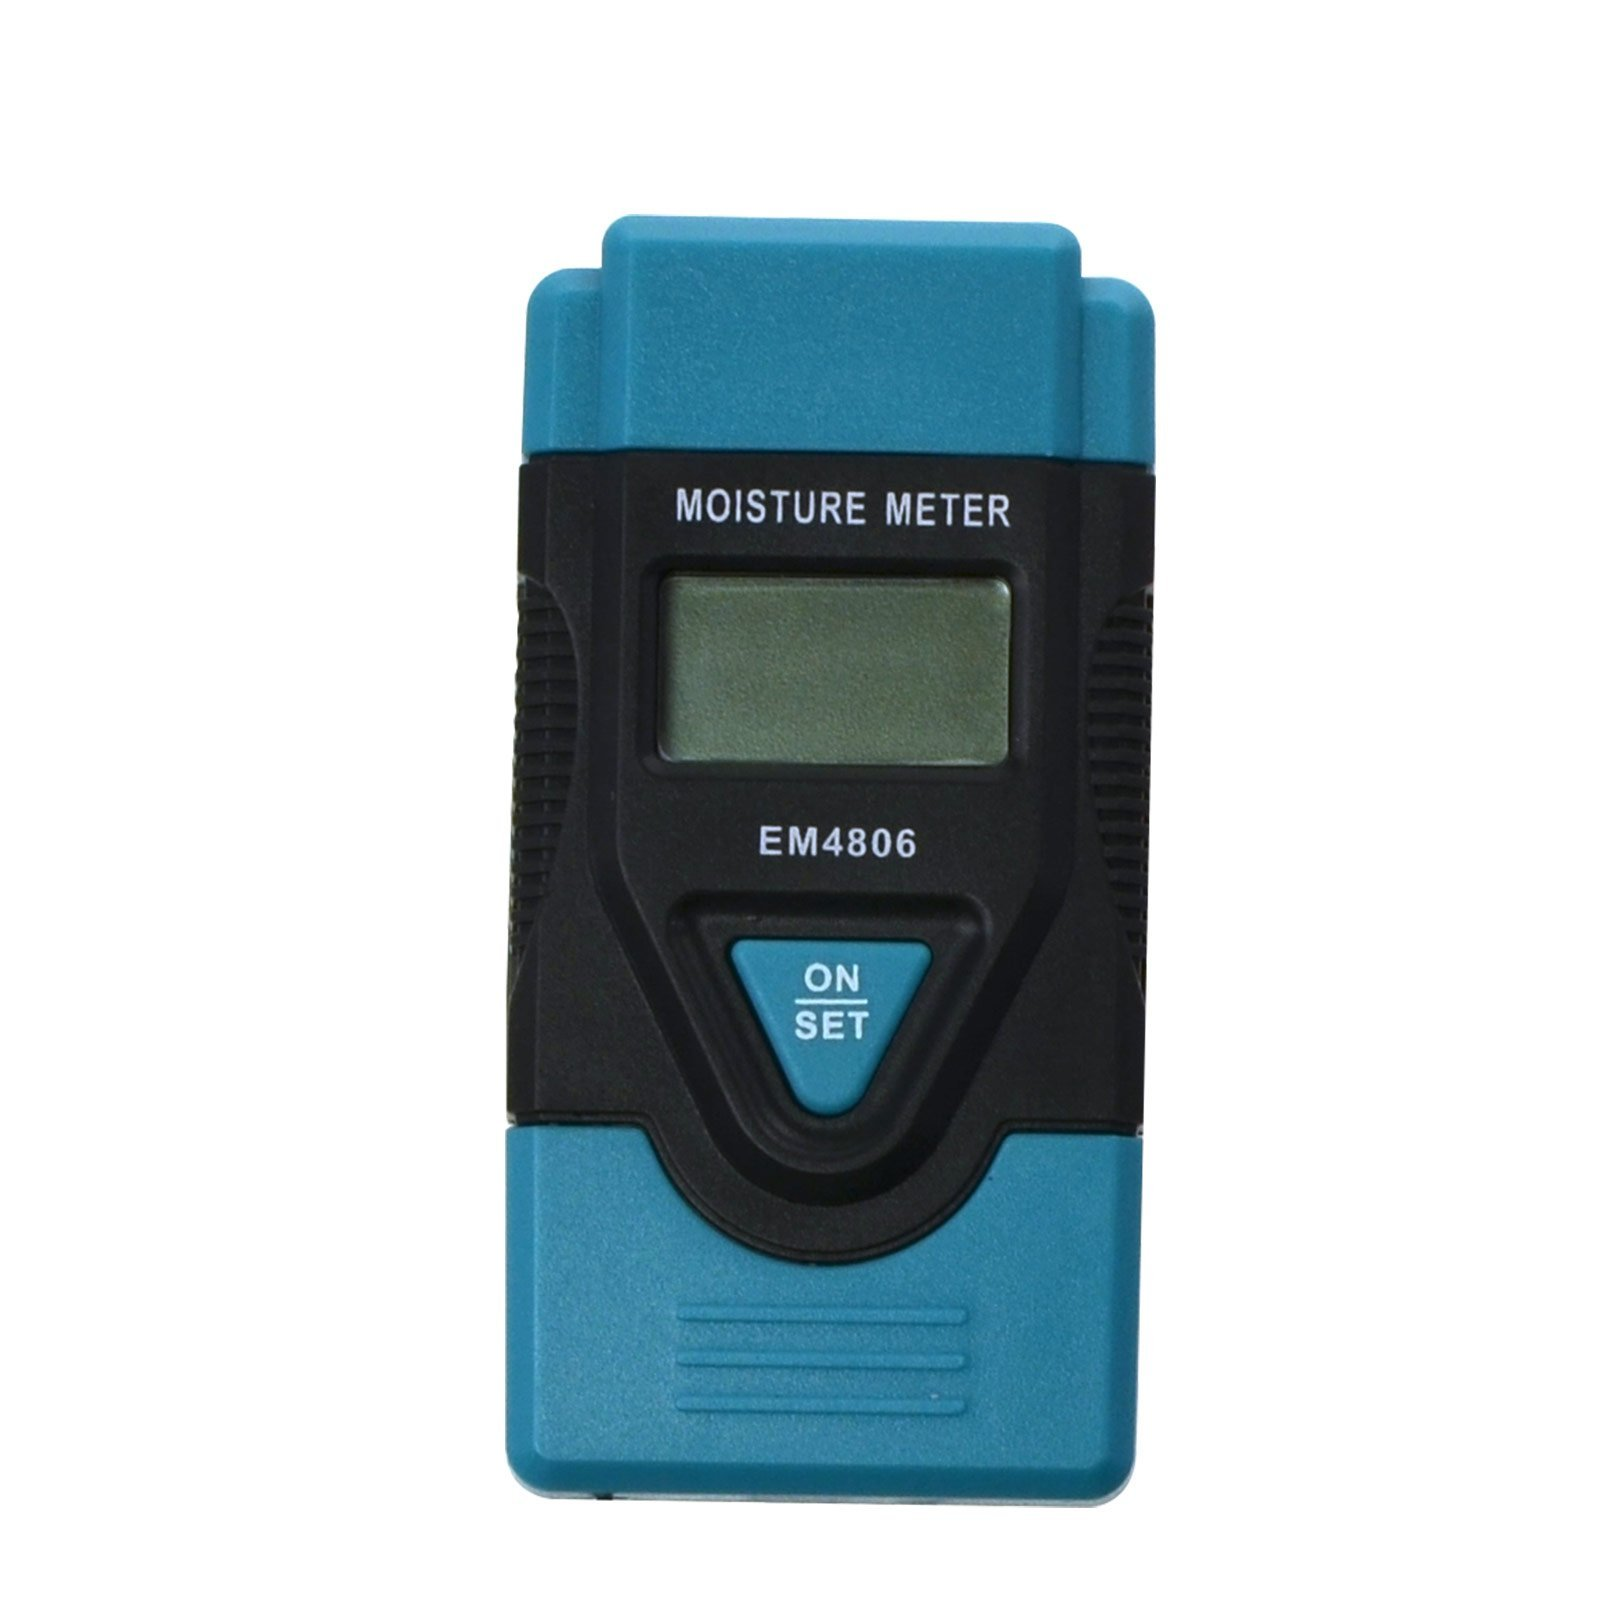 all-sun Mini 3 in 1 Digital Wood Moisture Meter / Building Material Humidity Tester / LCD Temperature Meter 2 Pin Steel Probes (Blue)